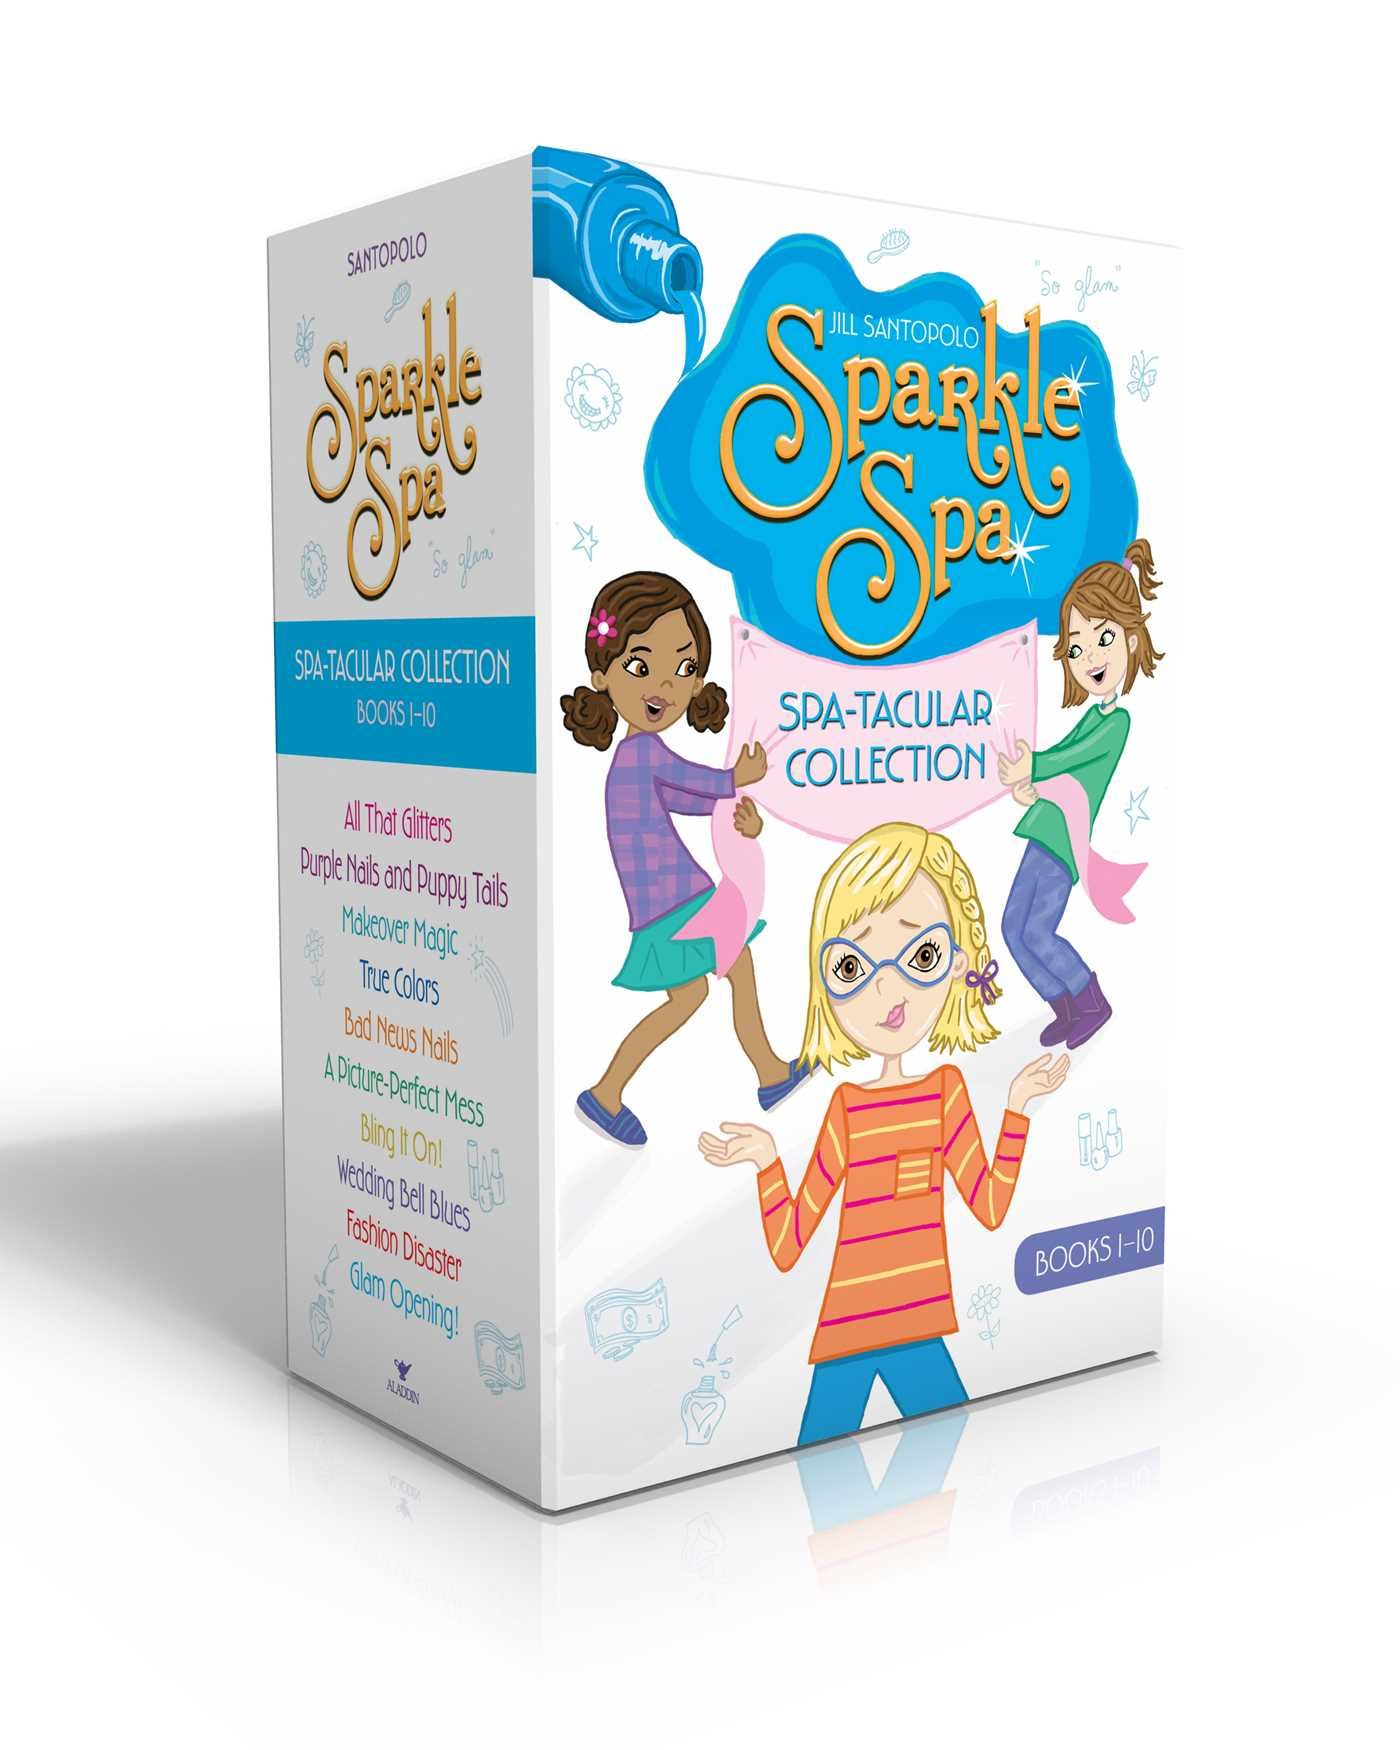 Sparkle Spa tacular Collection Books 1 10 product image